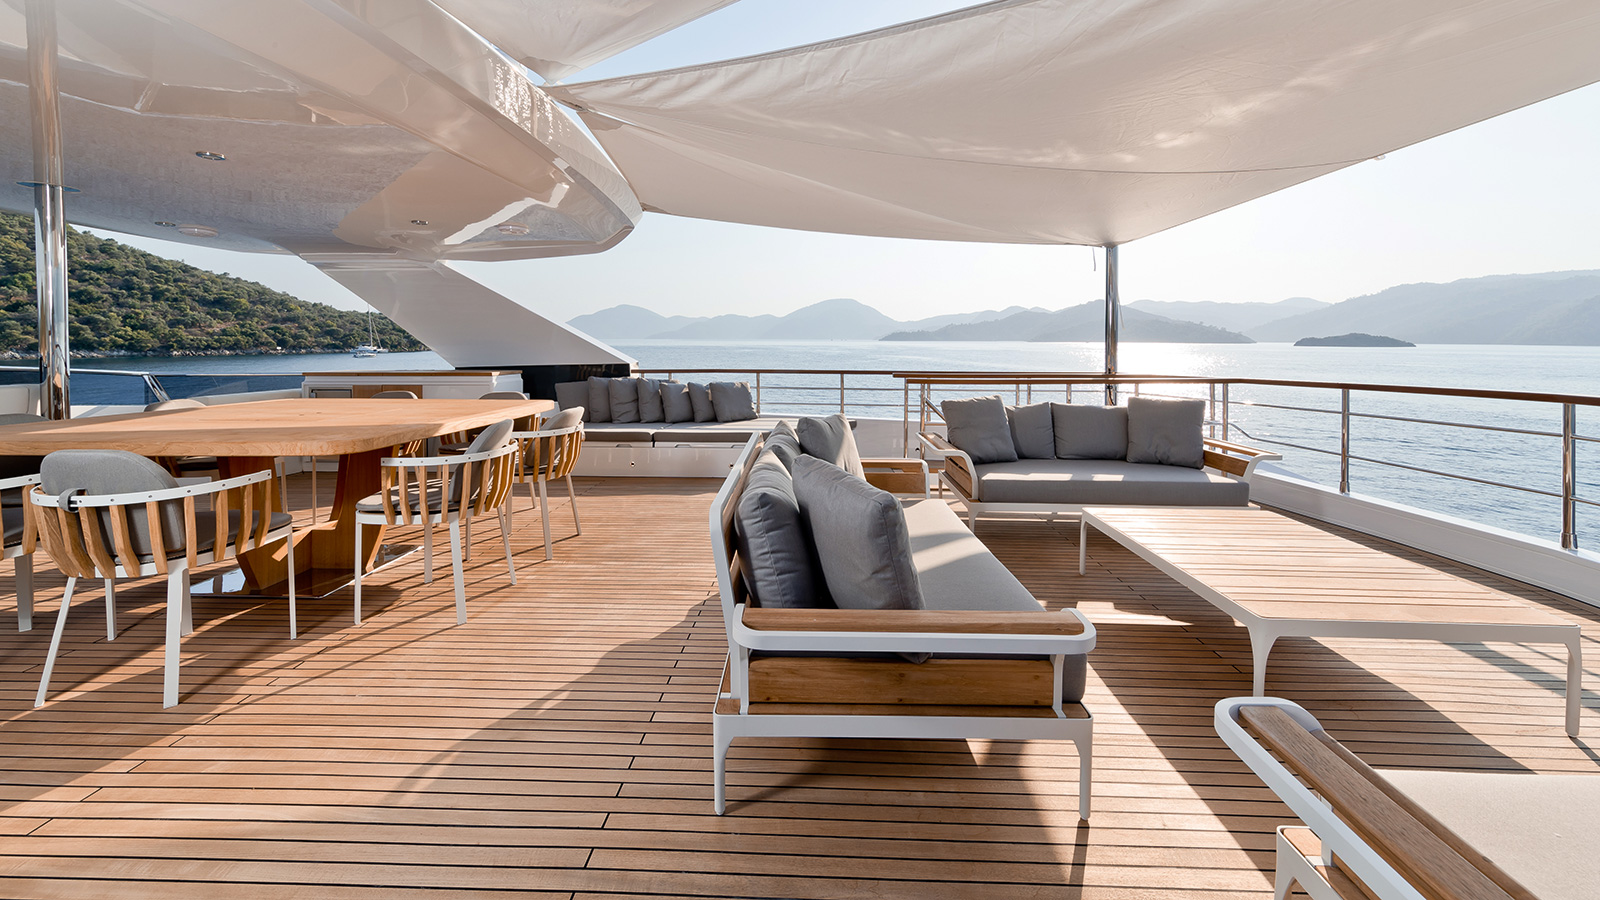 the-sundeck-of-the-numarine-32xp-yacht-marla-credit-jeff-brown-breed-media